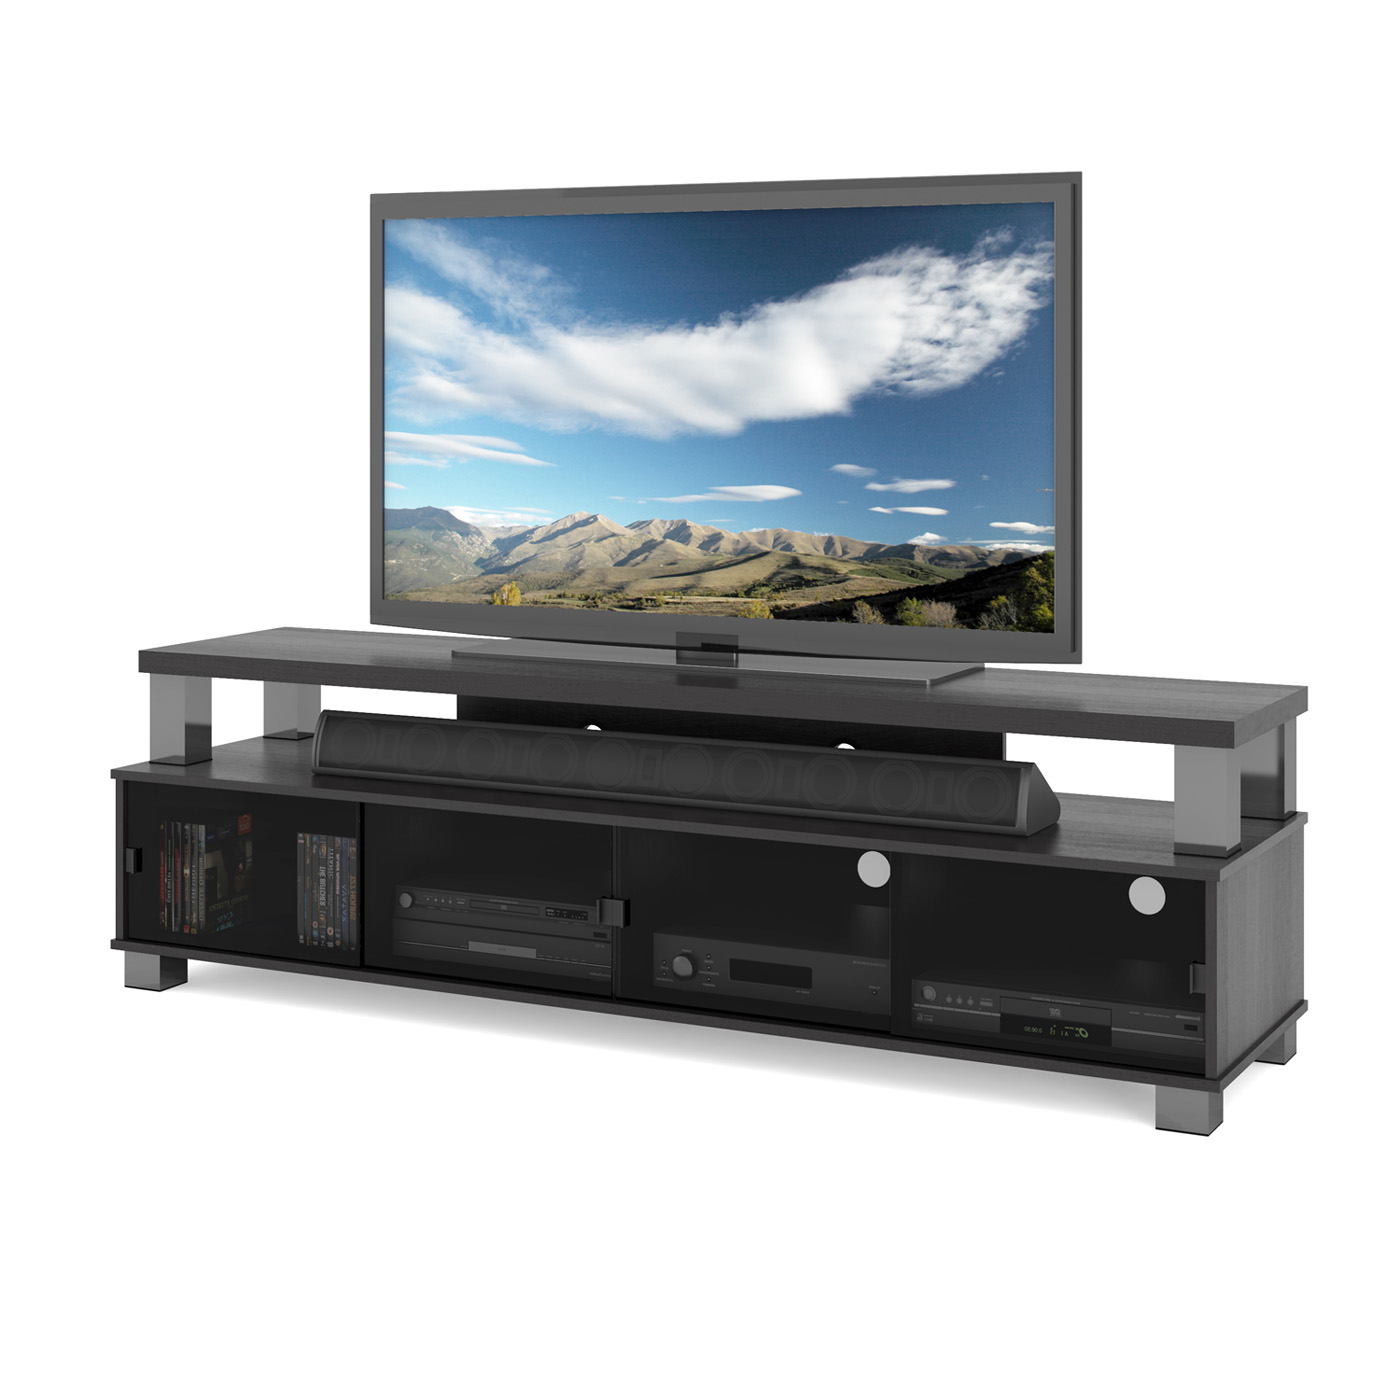 Modern Tv Stands | Lowe's Canada Pertaining To Oxford 70 Inch Tv Stands (View 14 of 20)